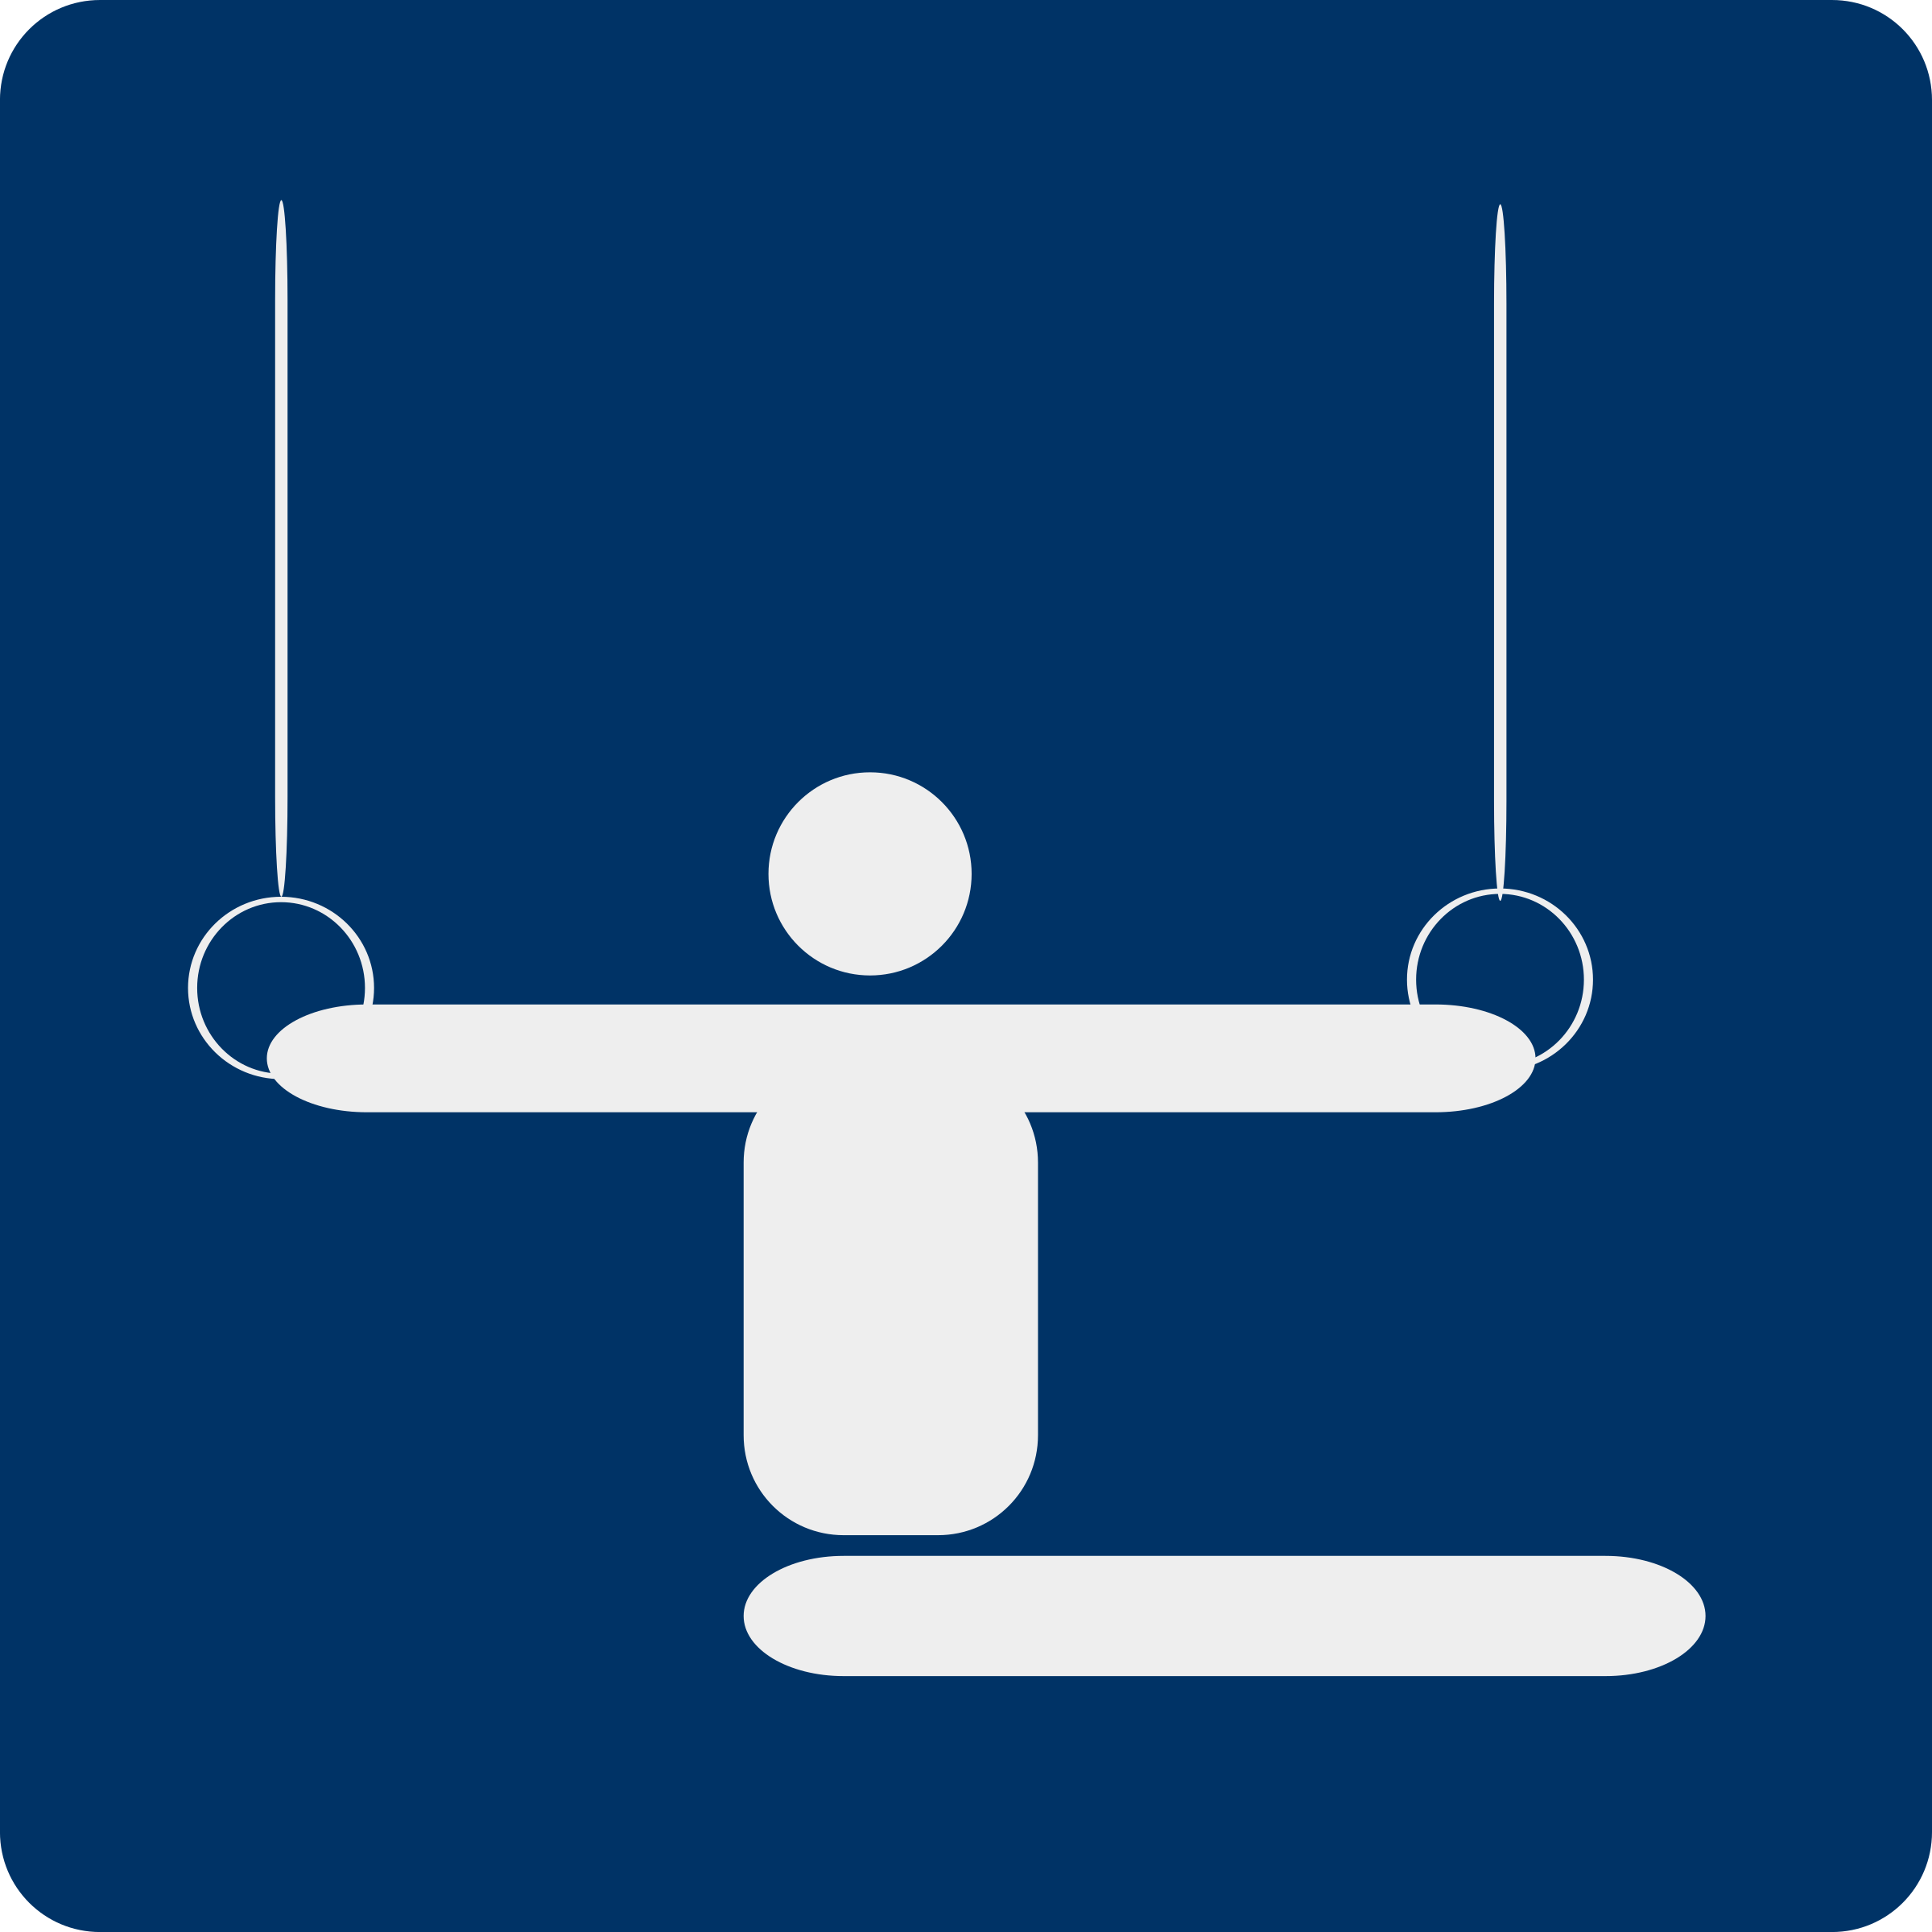 gymnastics pictogram by shokunin